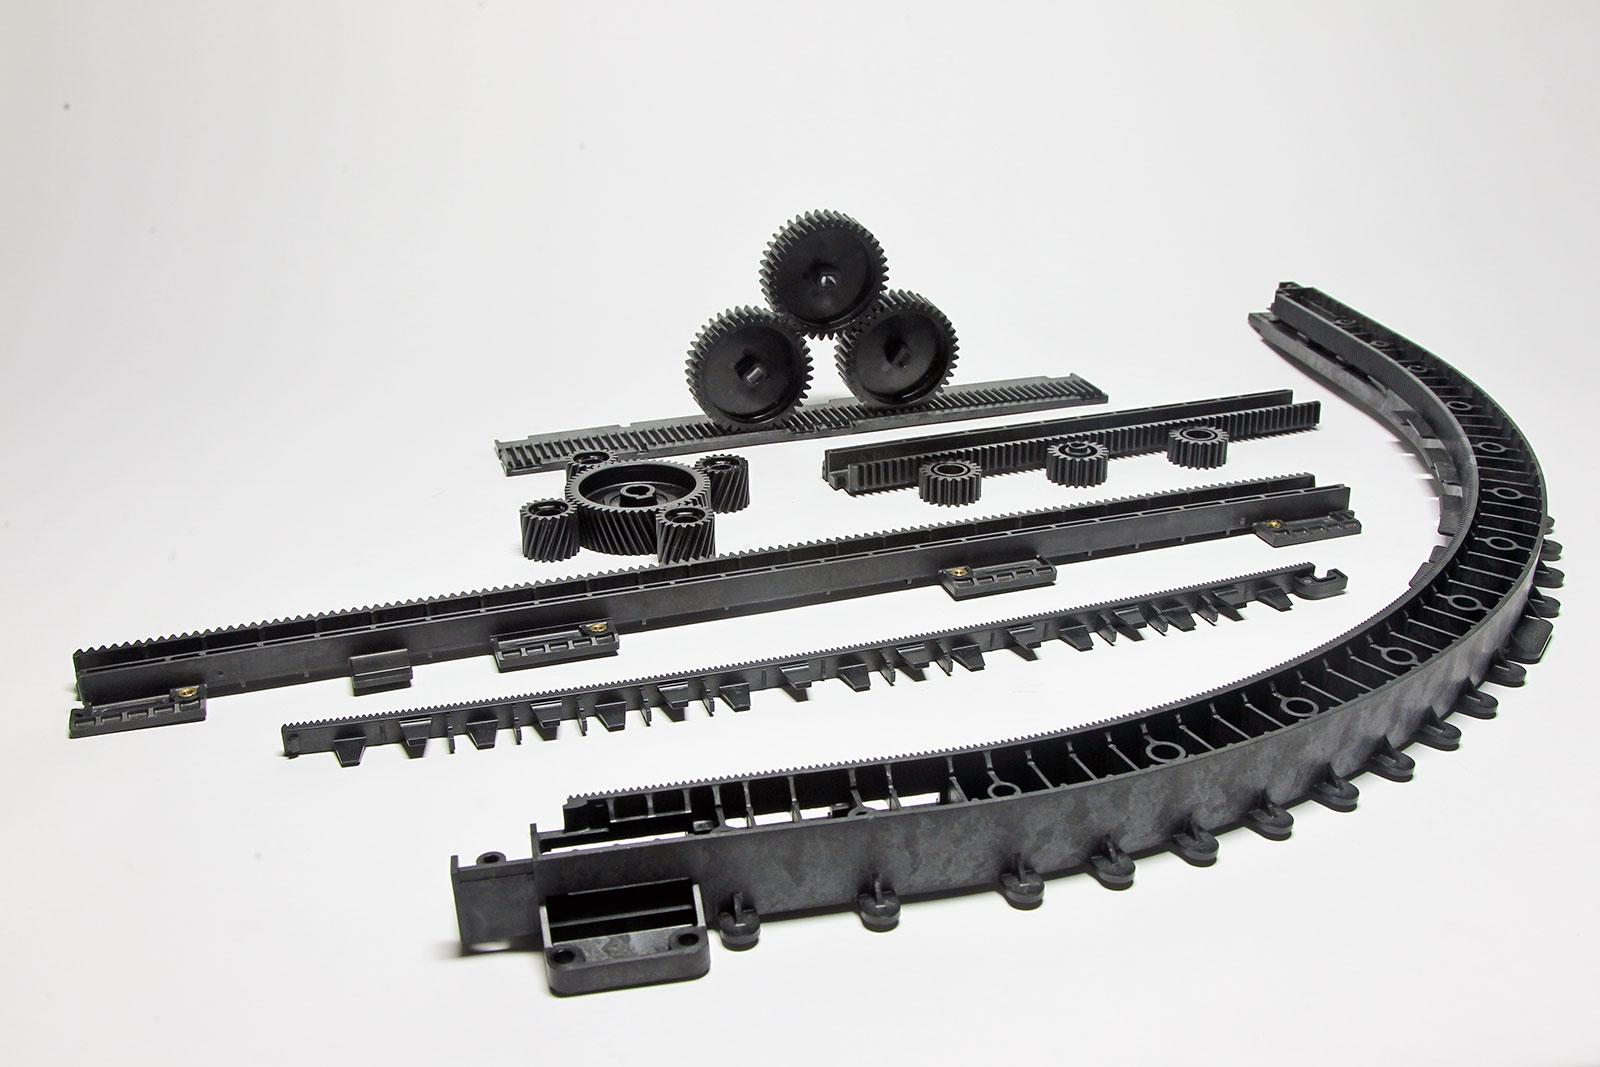 Seitz plastic injection molded automation components